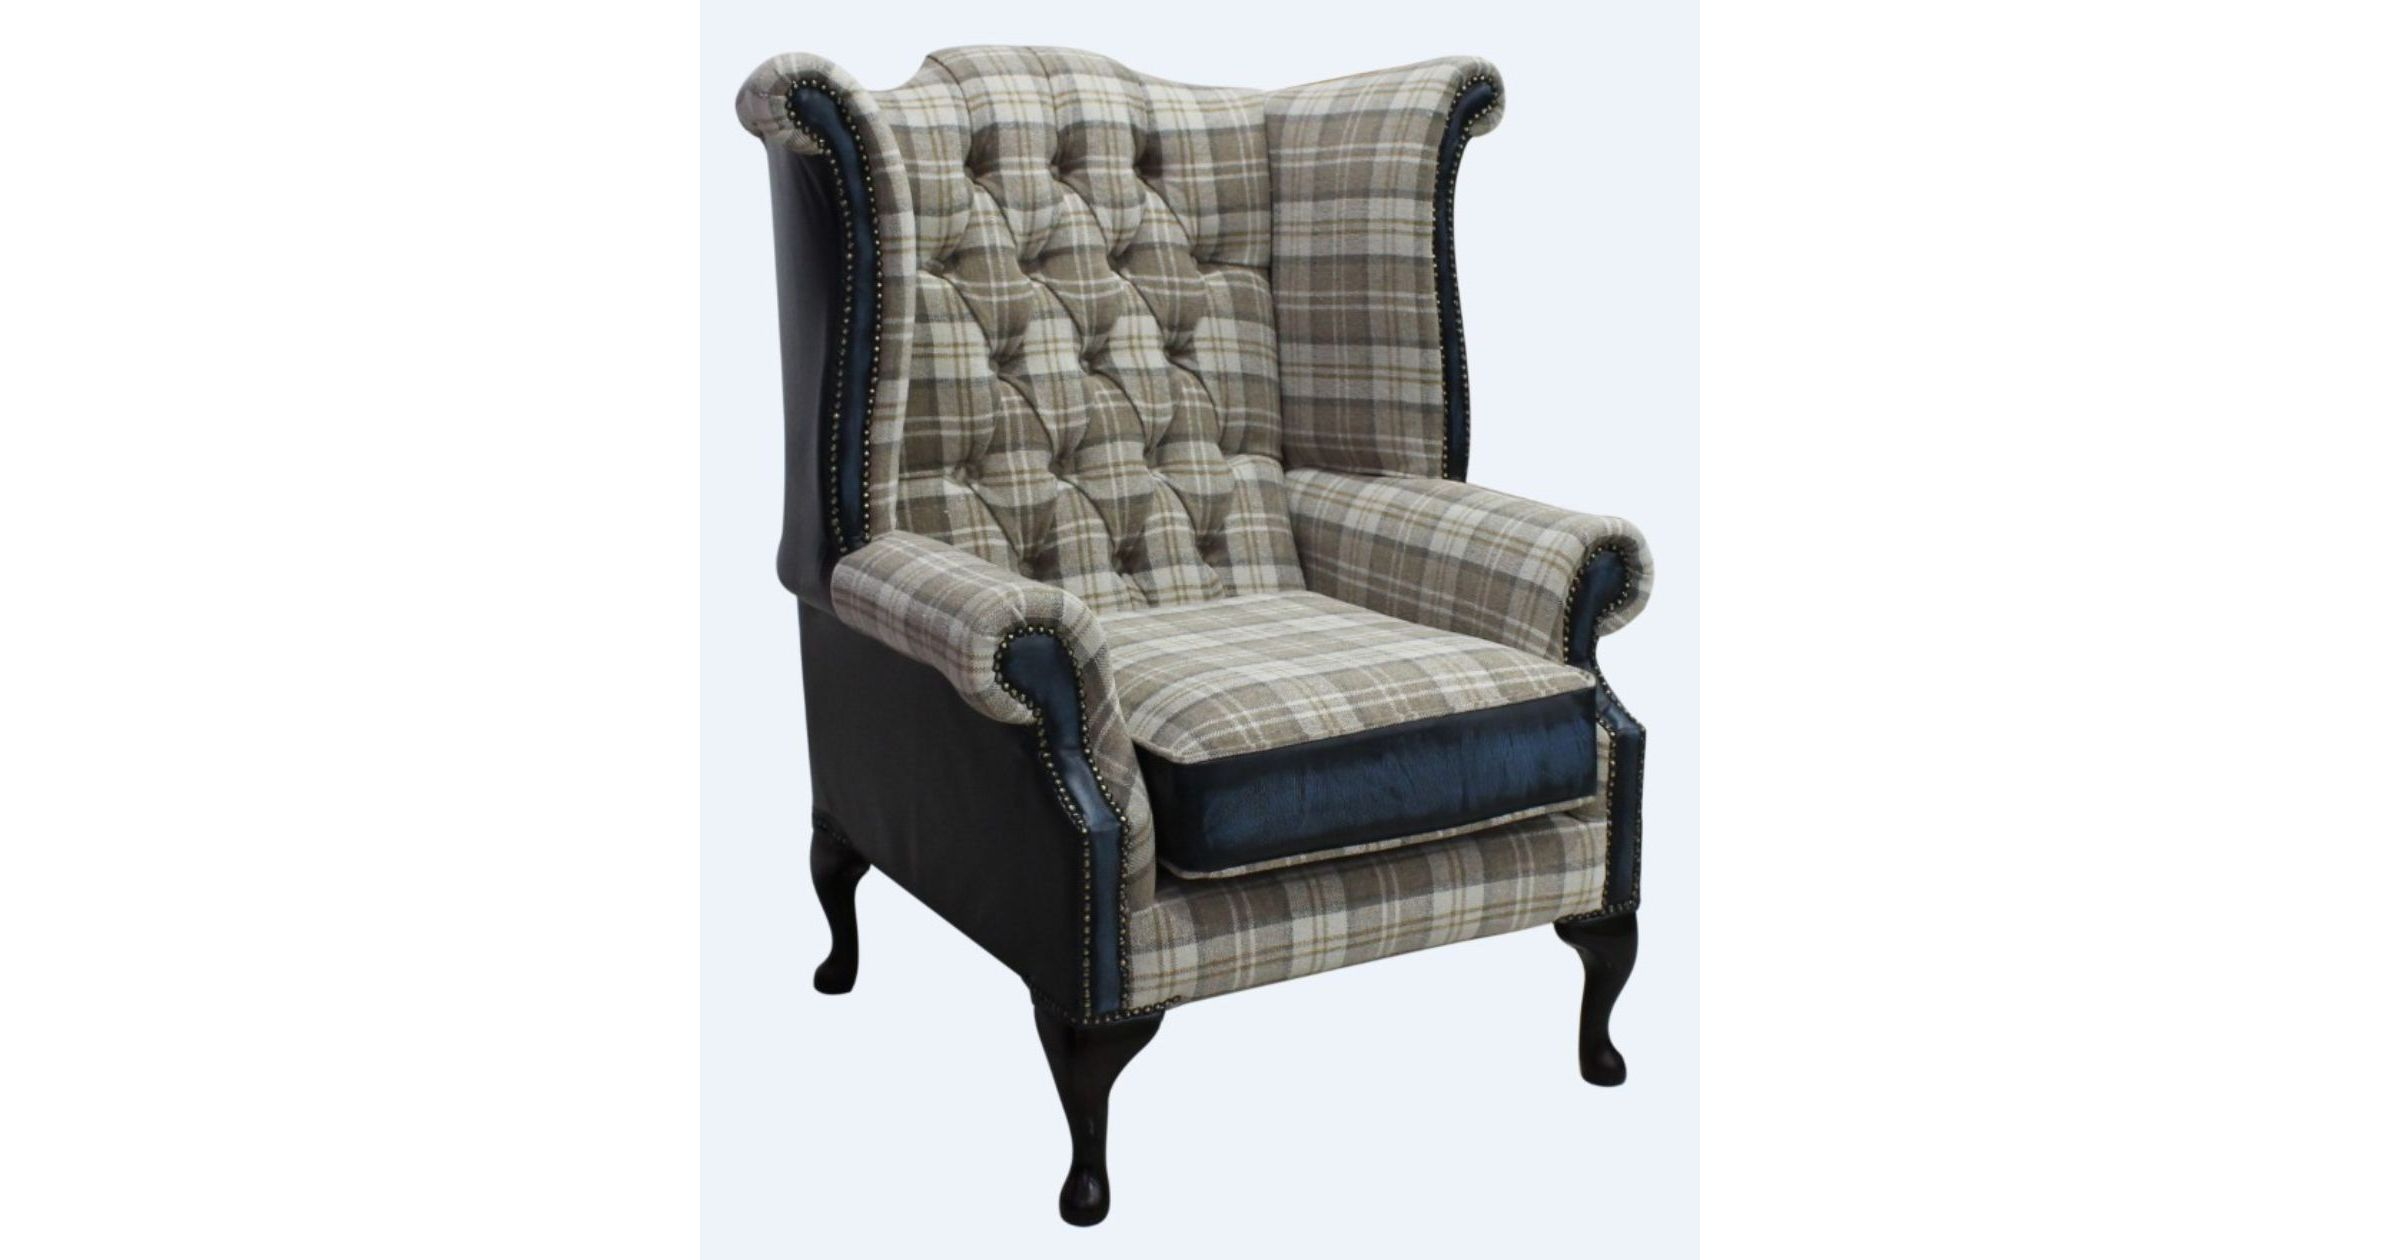 Truffle Check Chesterfield Queen Anne High Back chair